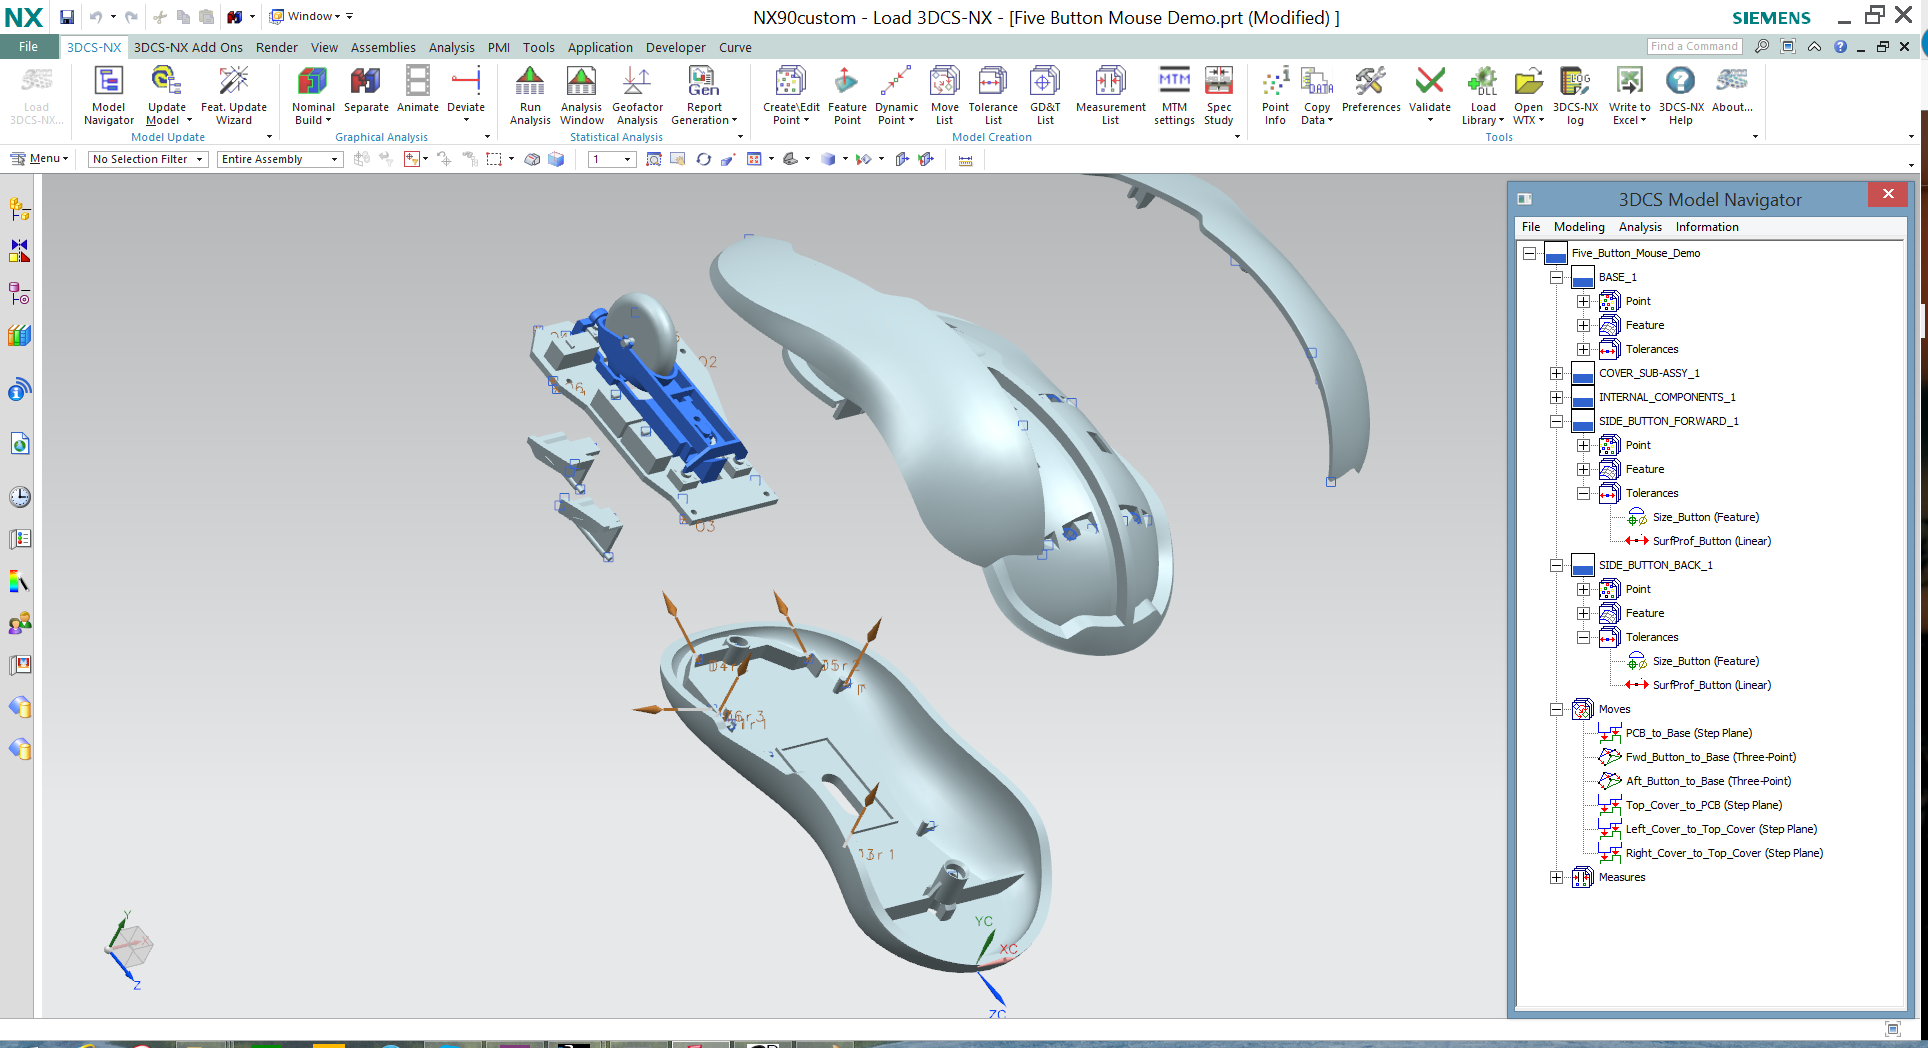 3dcs-nx-mouse-assembly-process